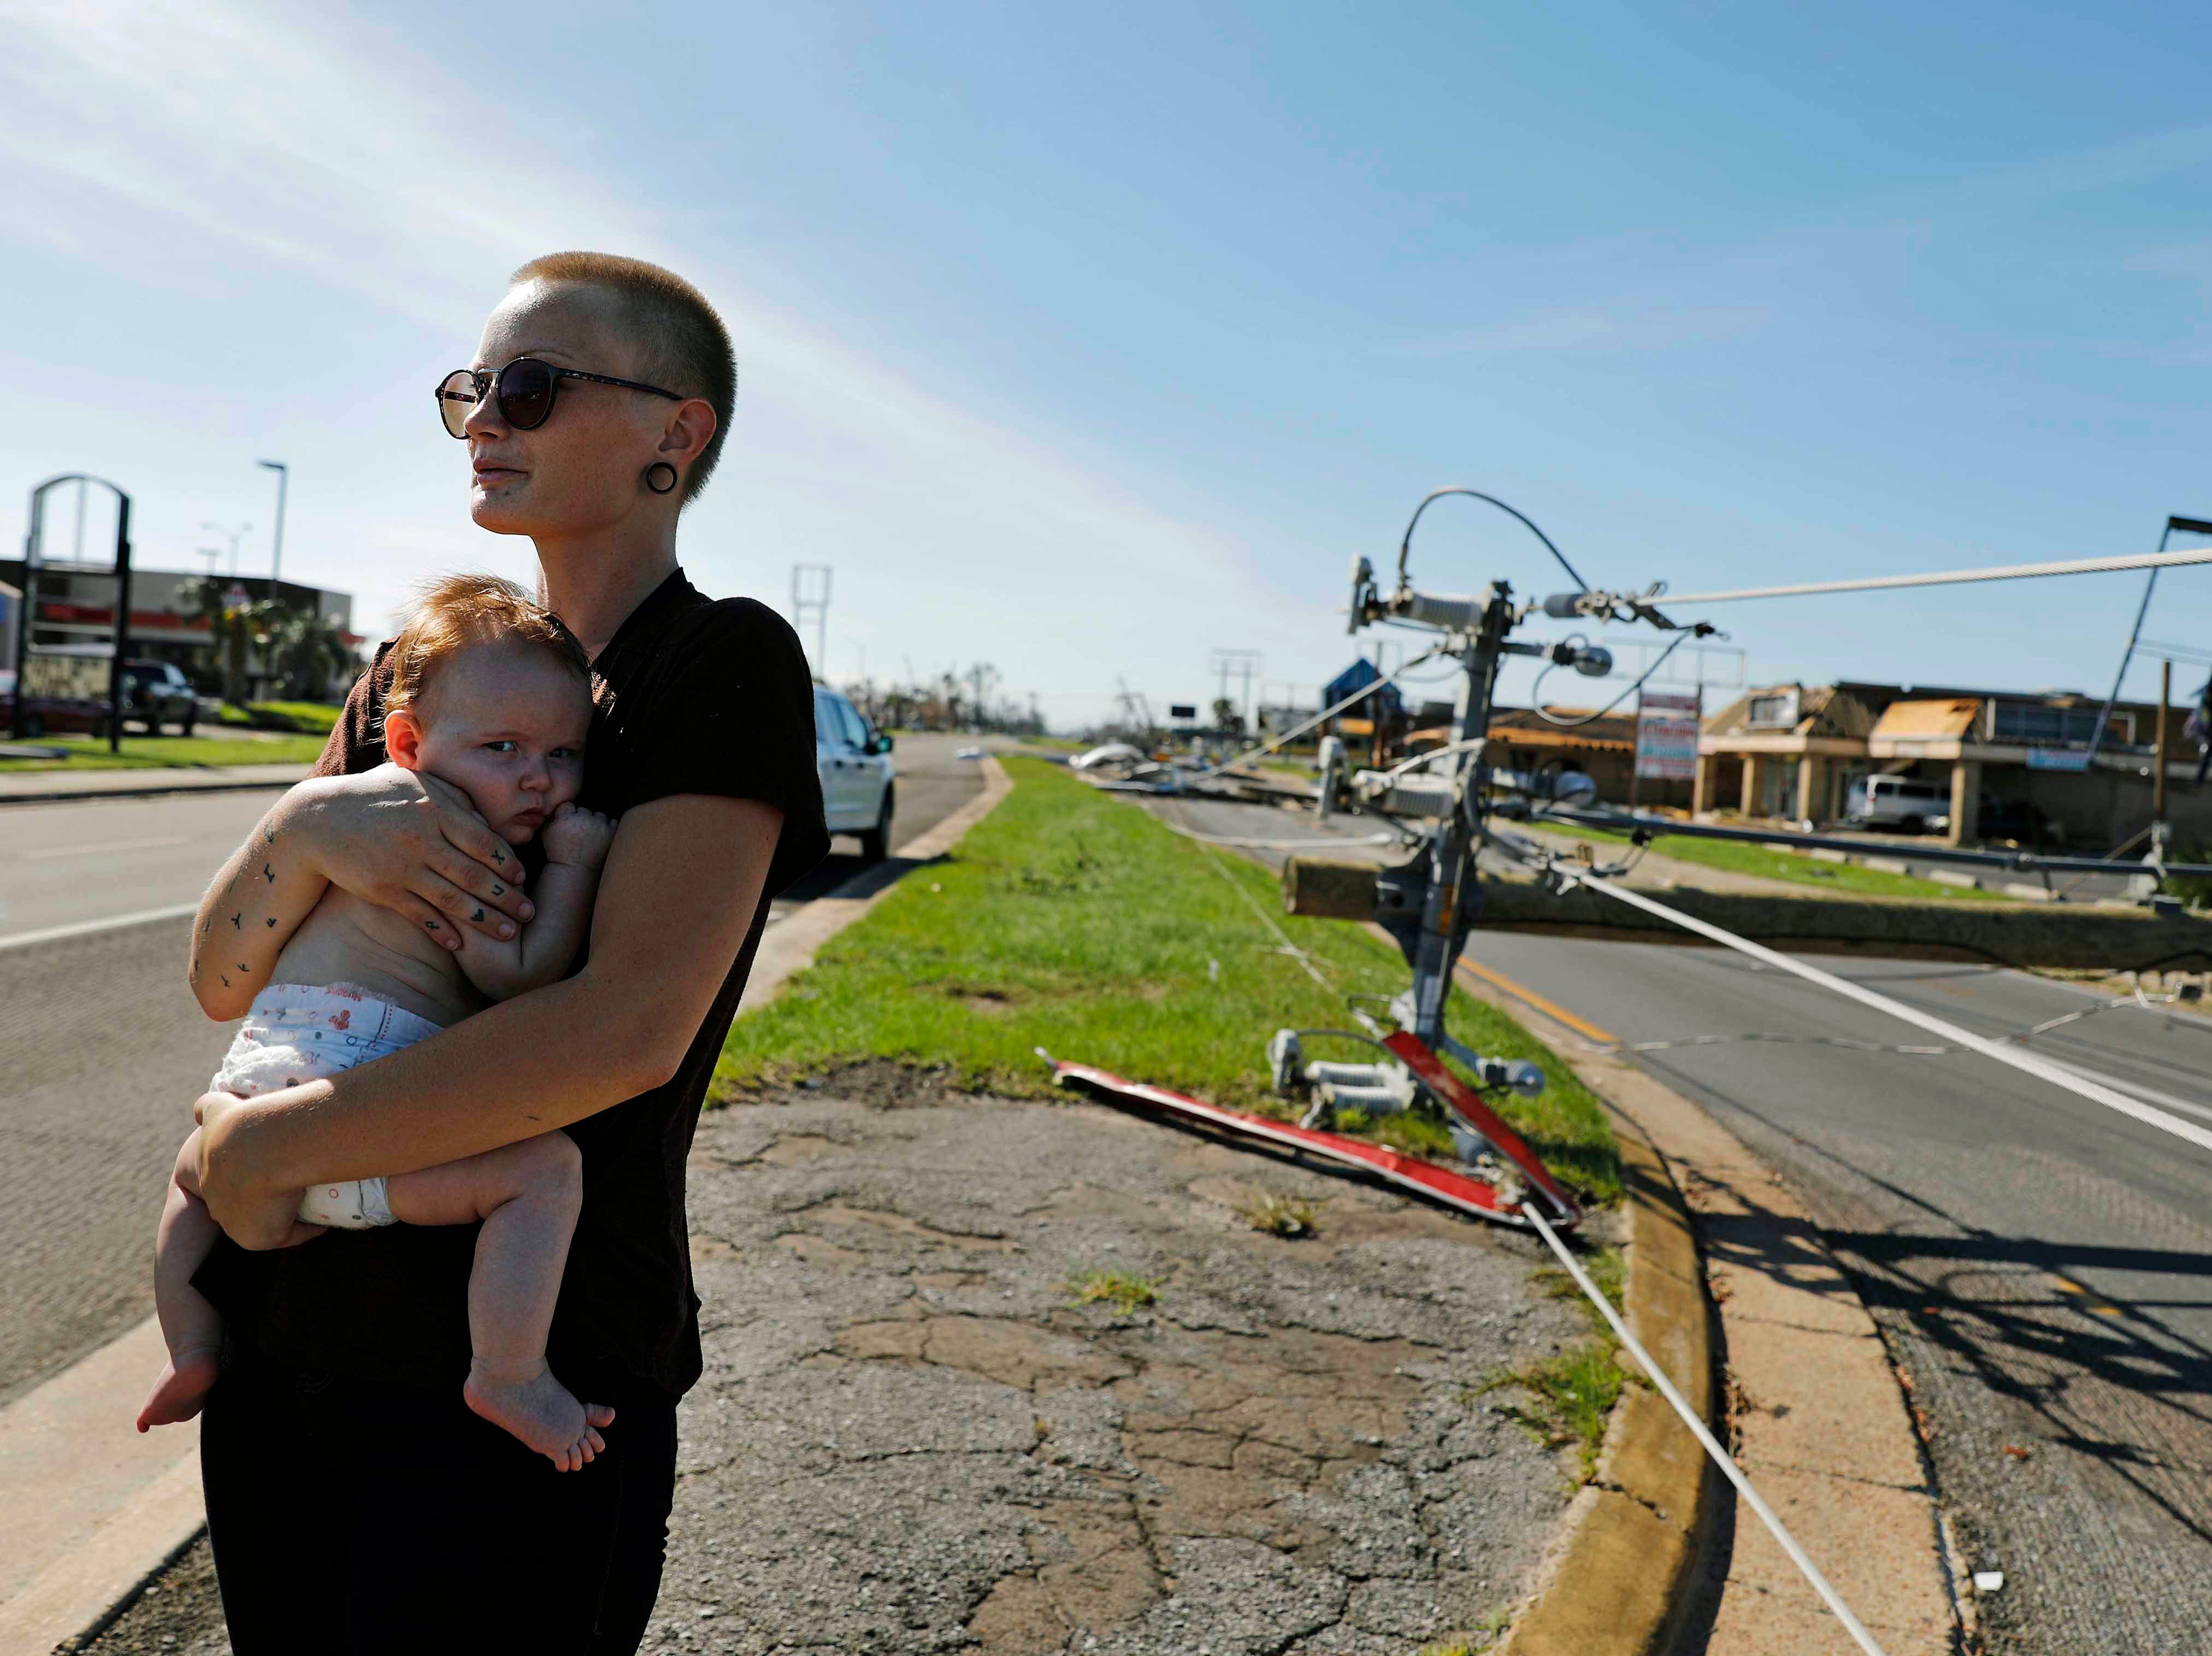 Kylie Strampe holds her four-month-old daughter, Lola, while surveying the damage from Hurricane Michael after riding out the storm in Callaway, Fla., Thursday, Oct. 11, 2018.